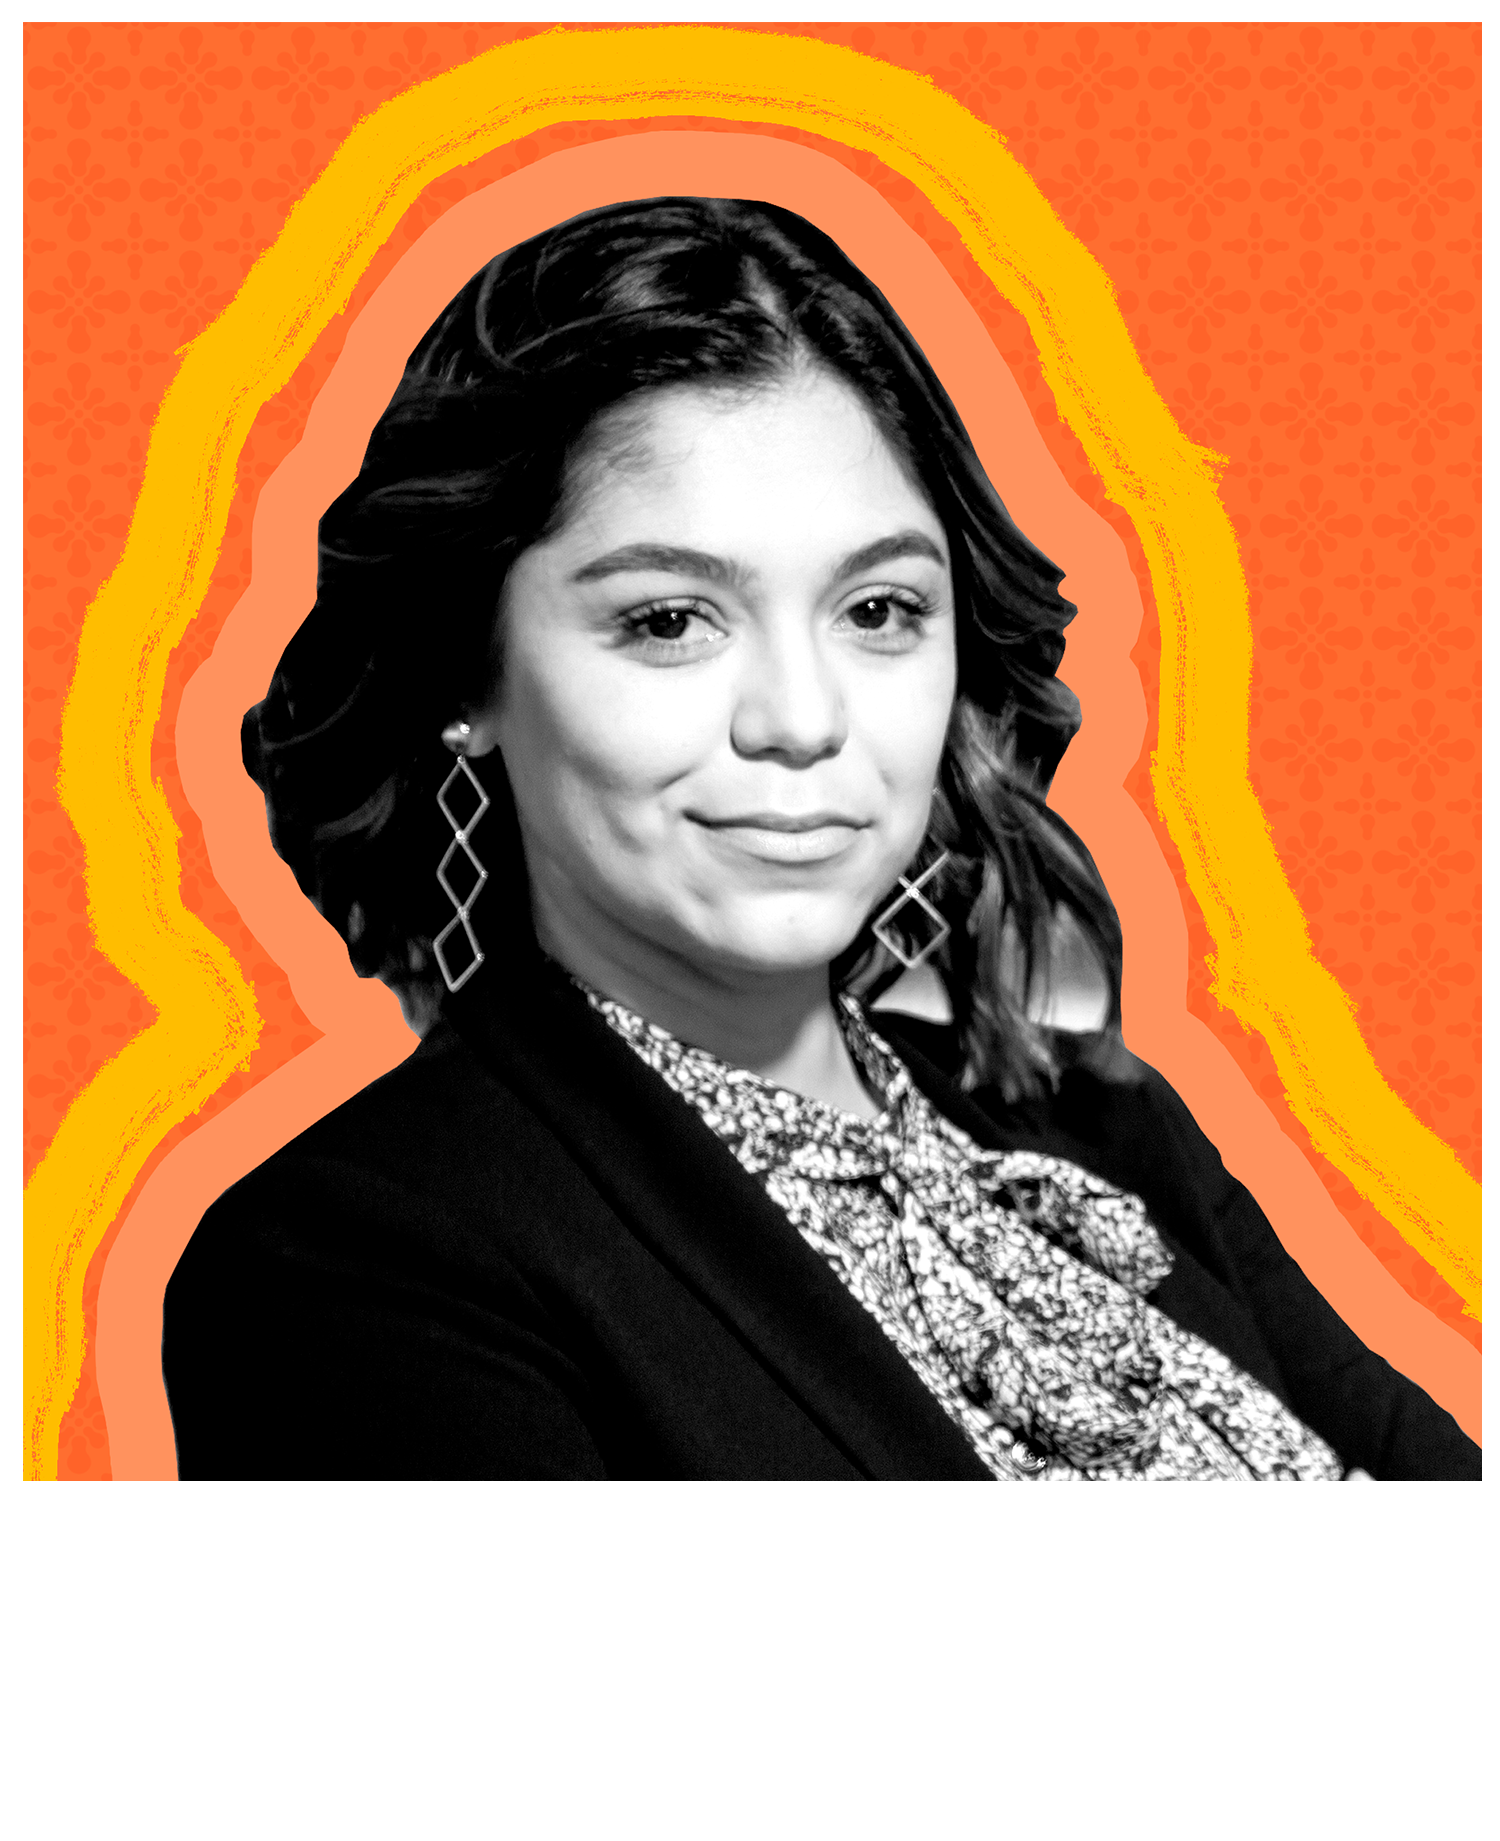 10142019---UWDA-Endorsement-Graphic-JohanaBencomo-Slide-v2